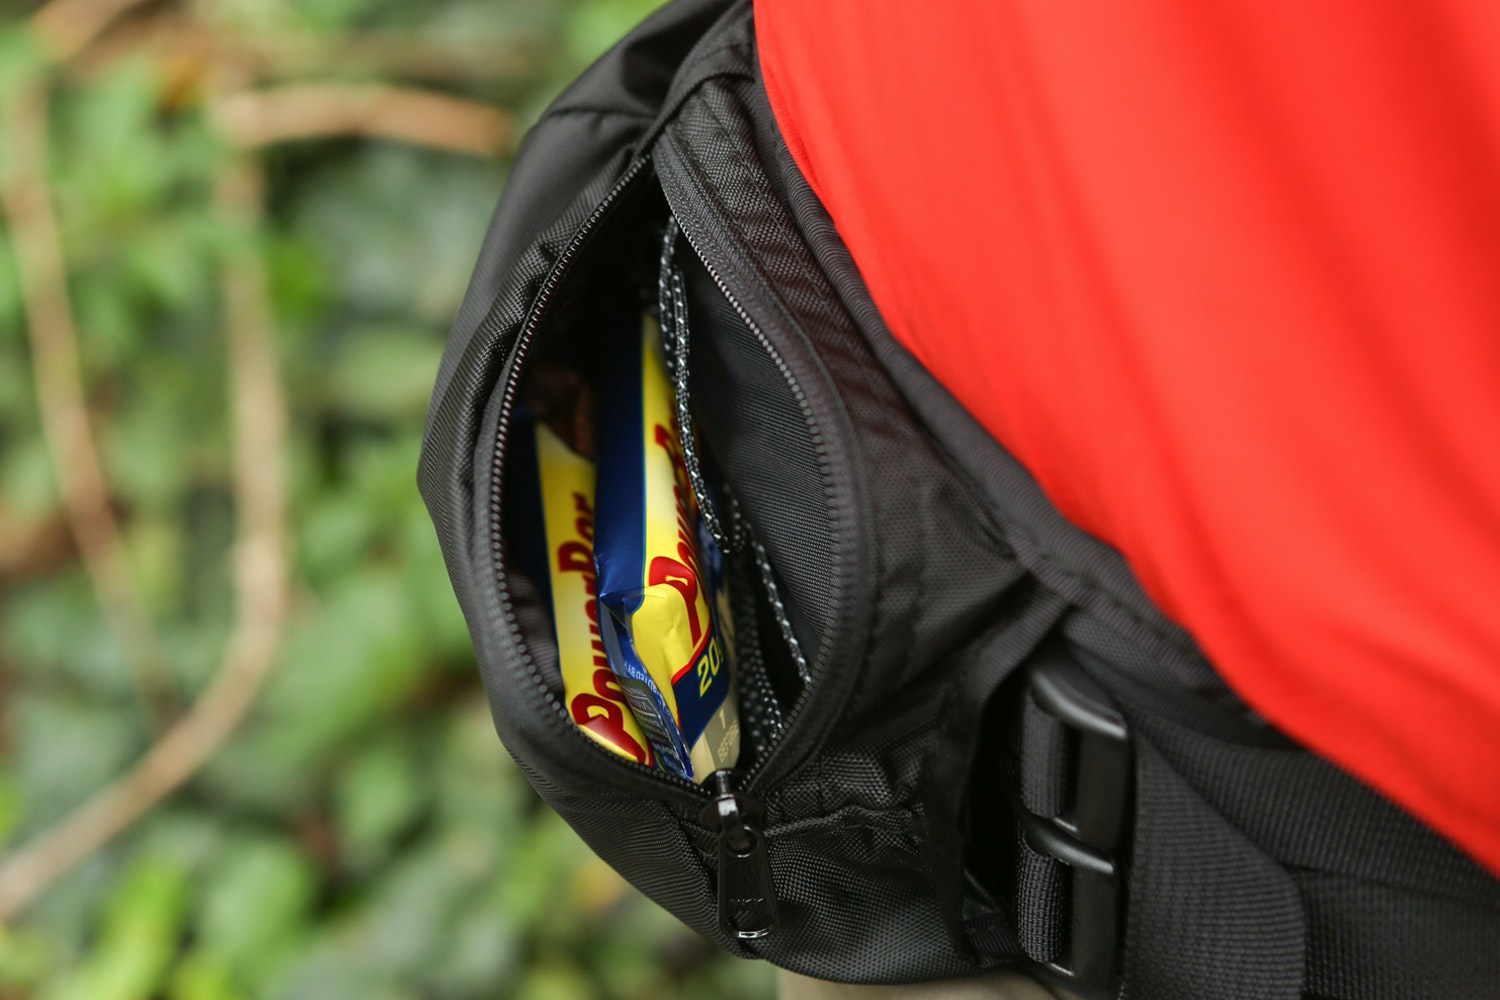 Large hipbelt pockets